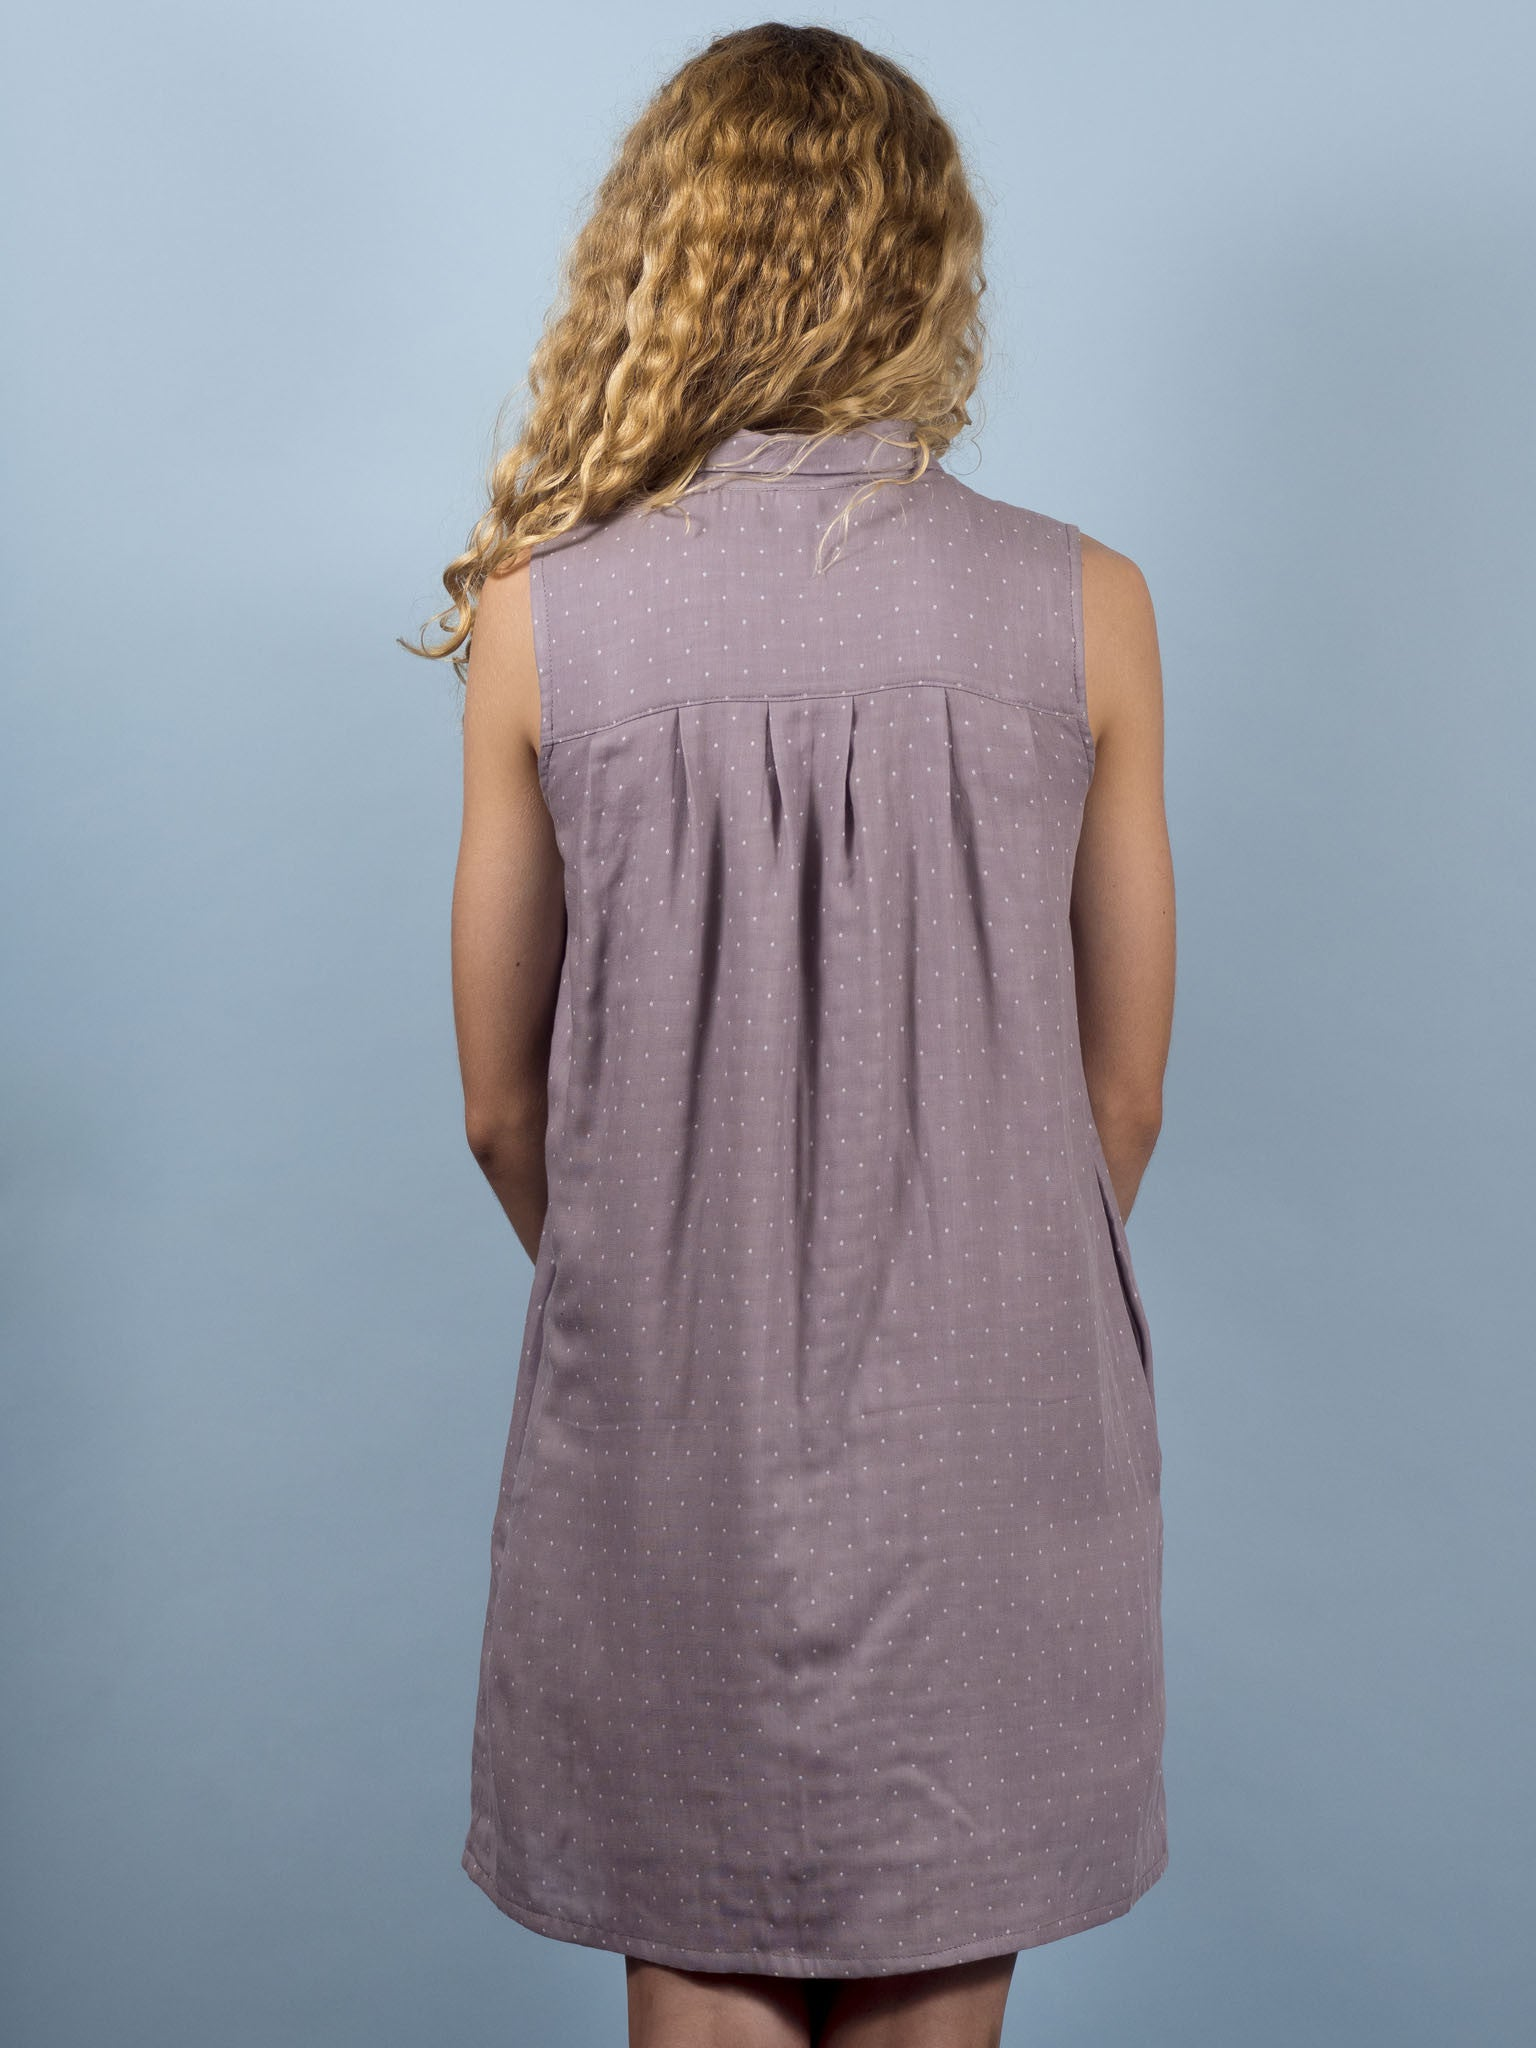 Juniper Dress in Mist Dot